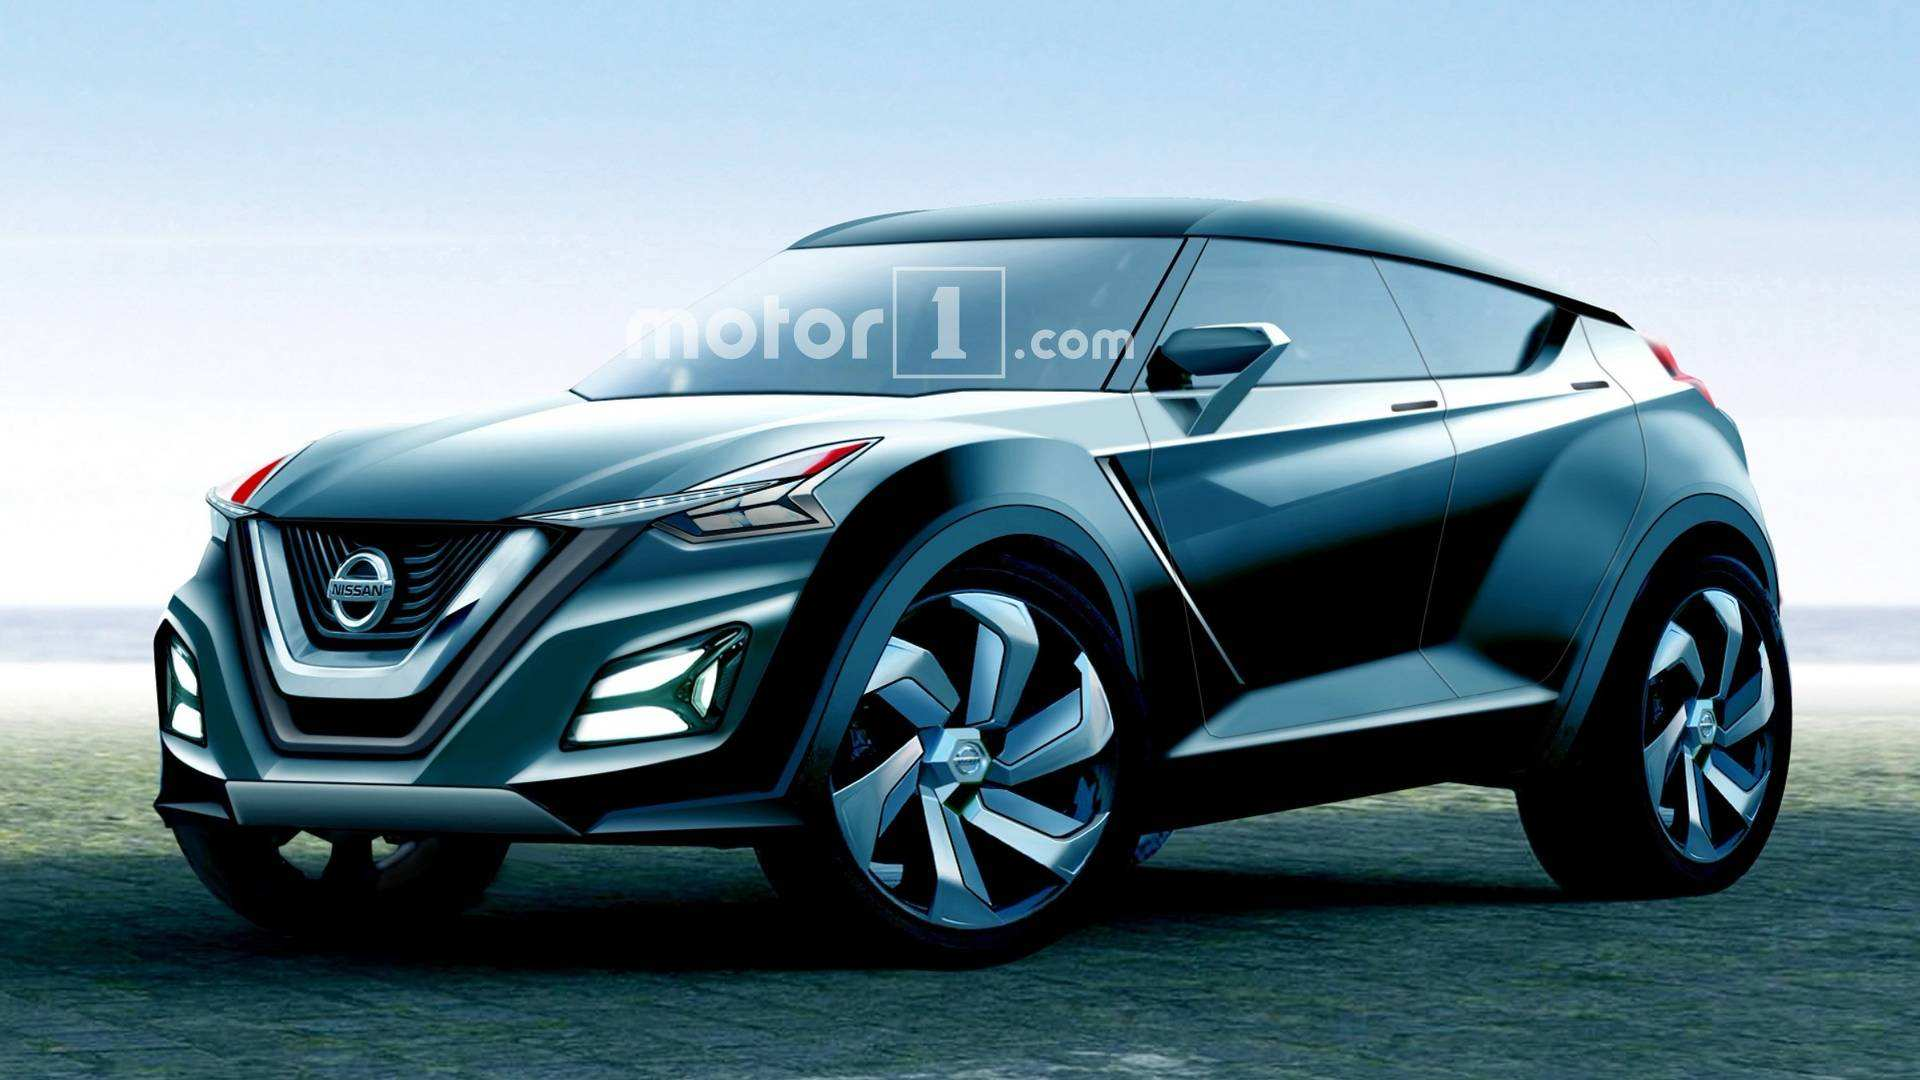 99 Gallery of New Nissan 2019 Lineup New Engine Reviews with New Nissan 2019 Lineup New Engine